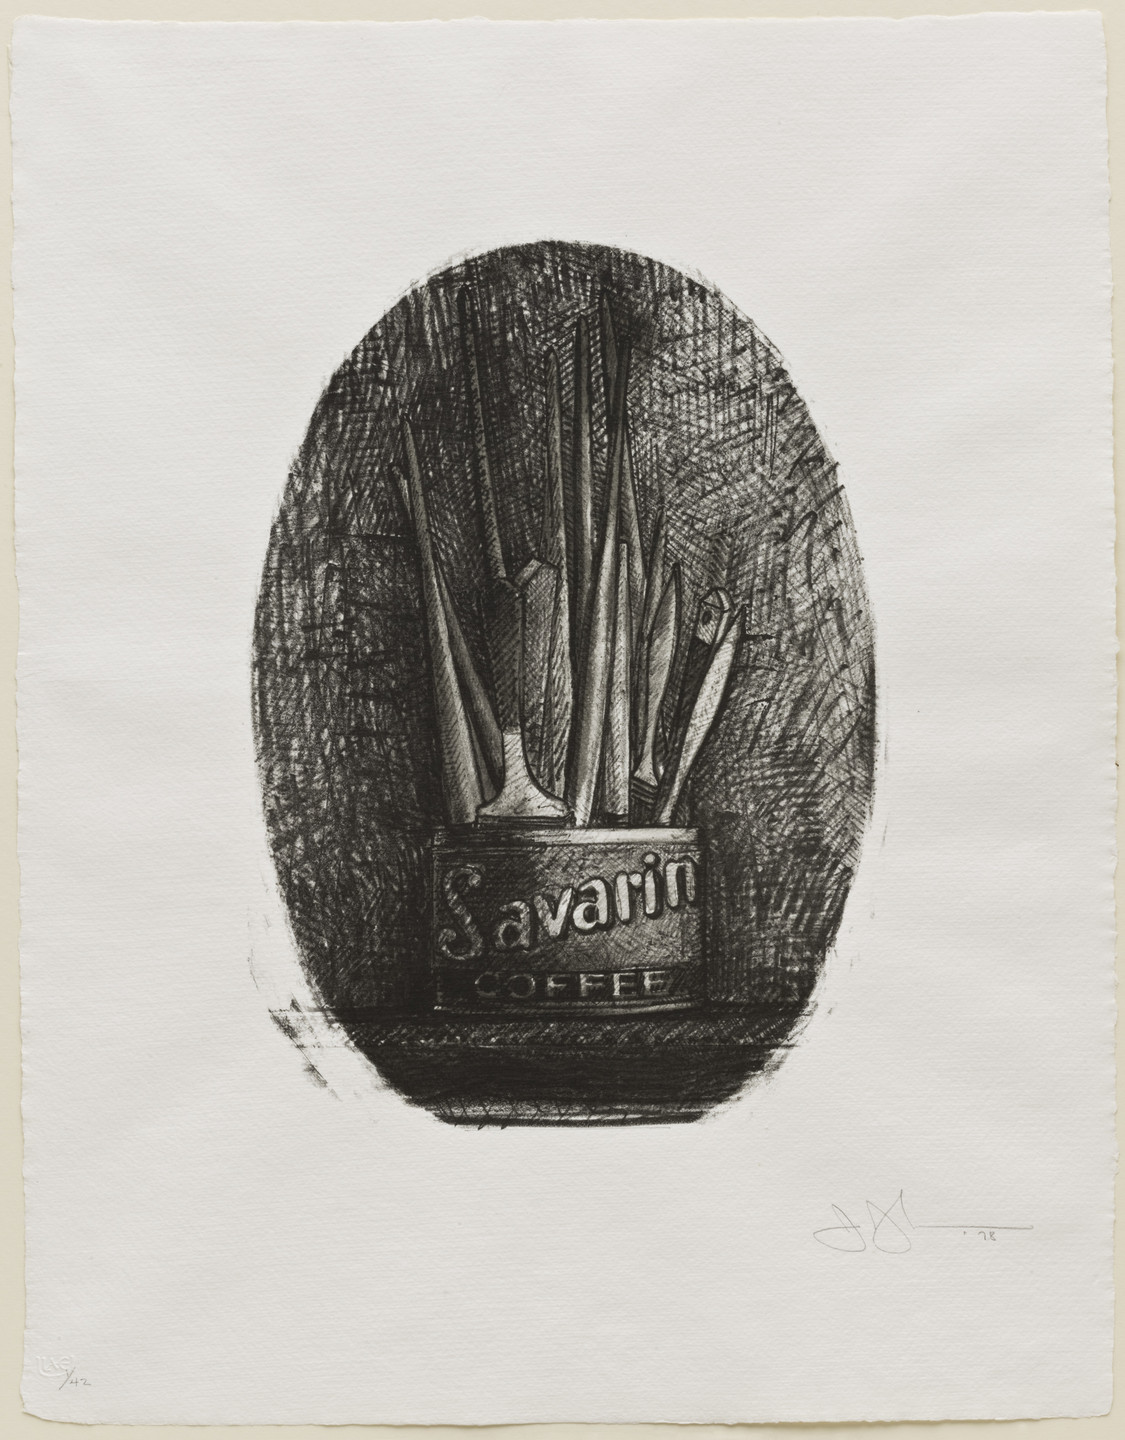 Jasper Johns. Savarin 4 (Oval). 1978